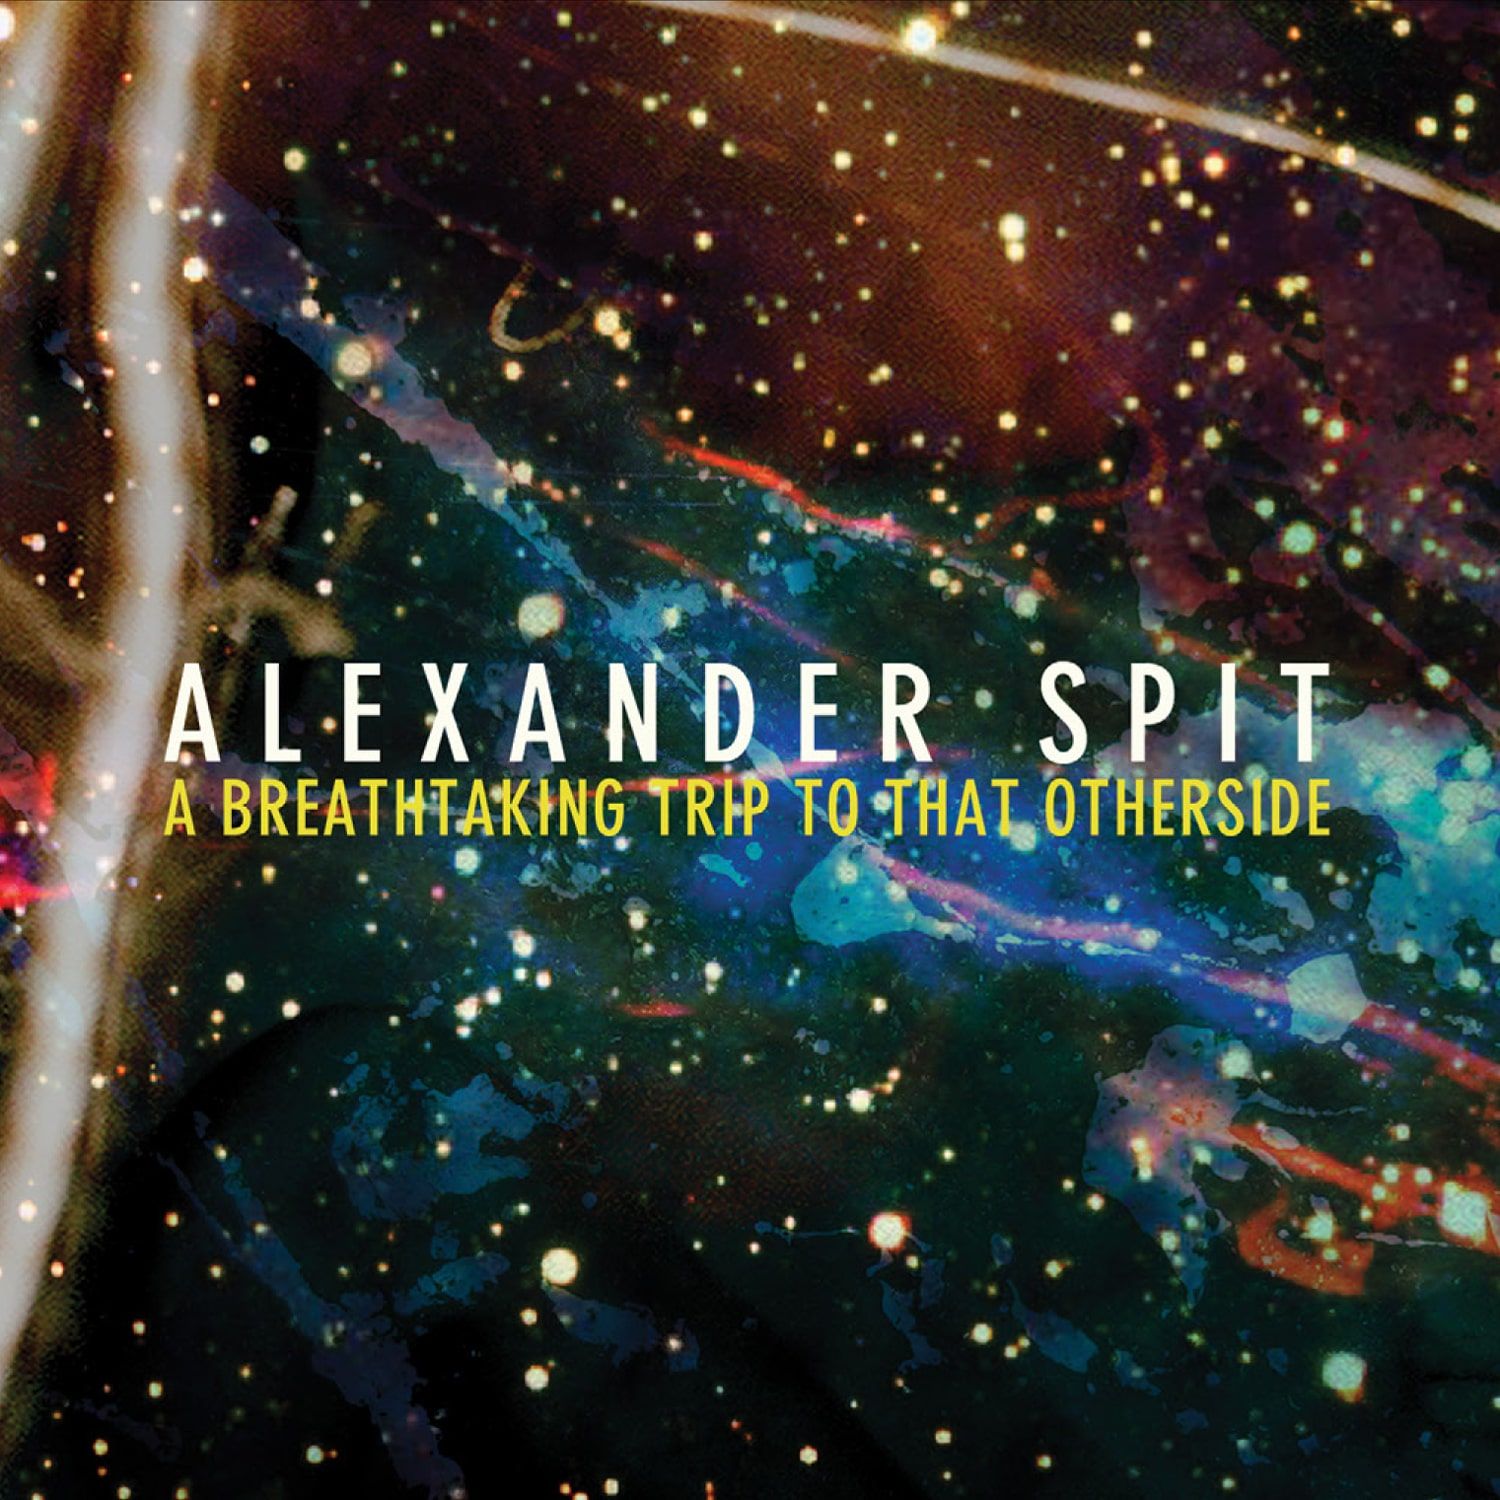 ALEXANDER_SPIT_A_BREATHTAKING_TRIP_TO_THAT_OTHERSIDE_ARTWORK.jpg